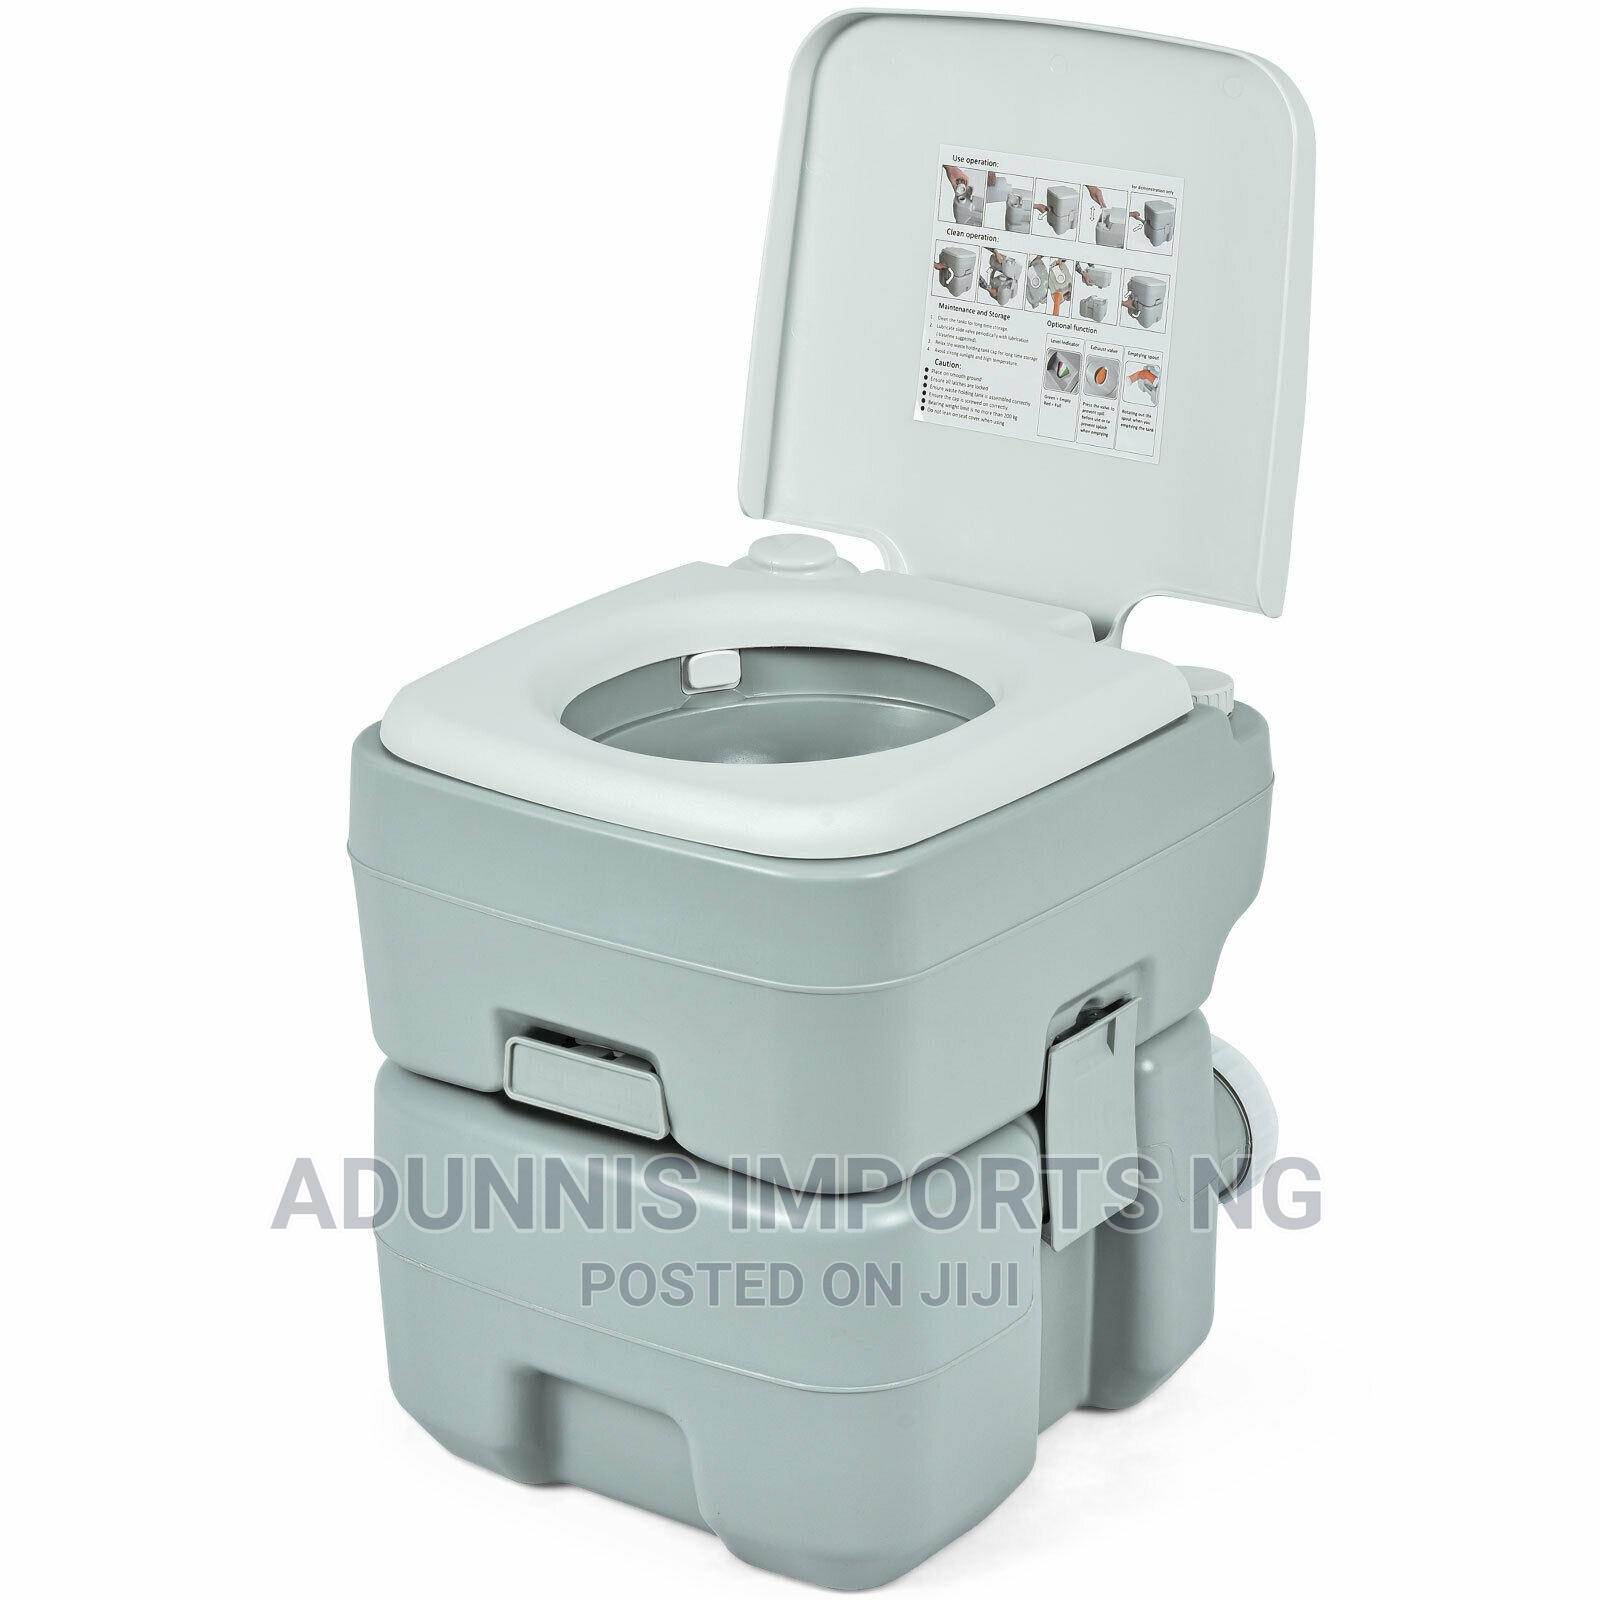 5.3 Gallon 20L Outdoor Portable Toilet With Level Indicator